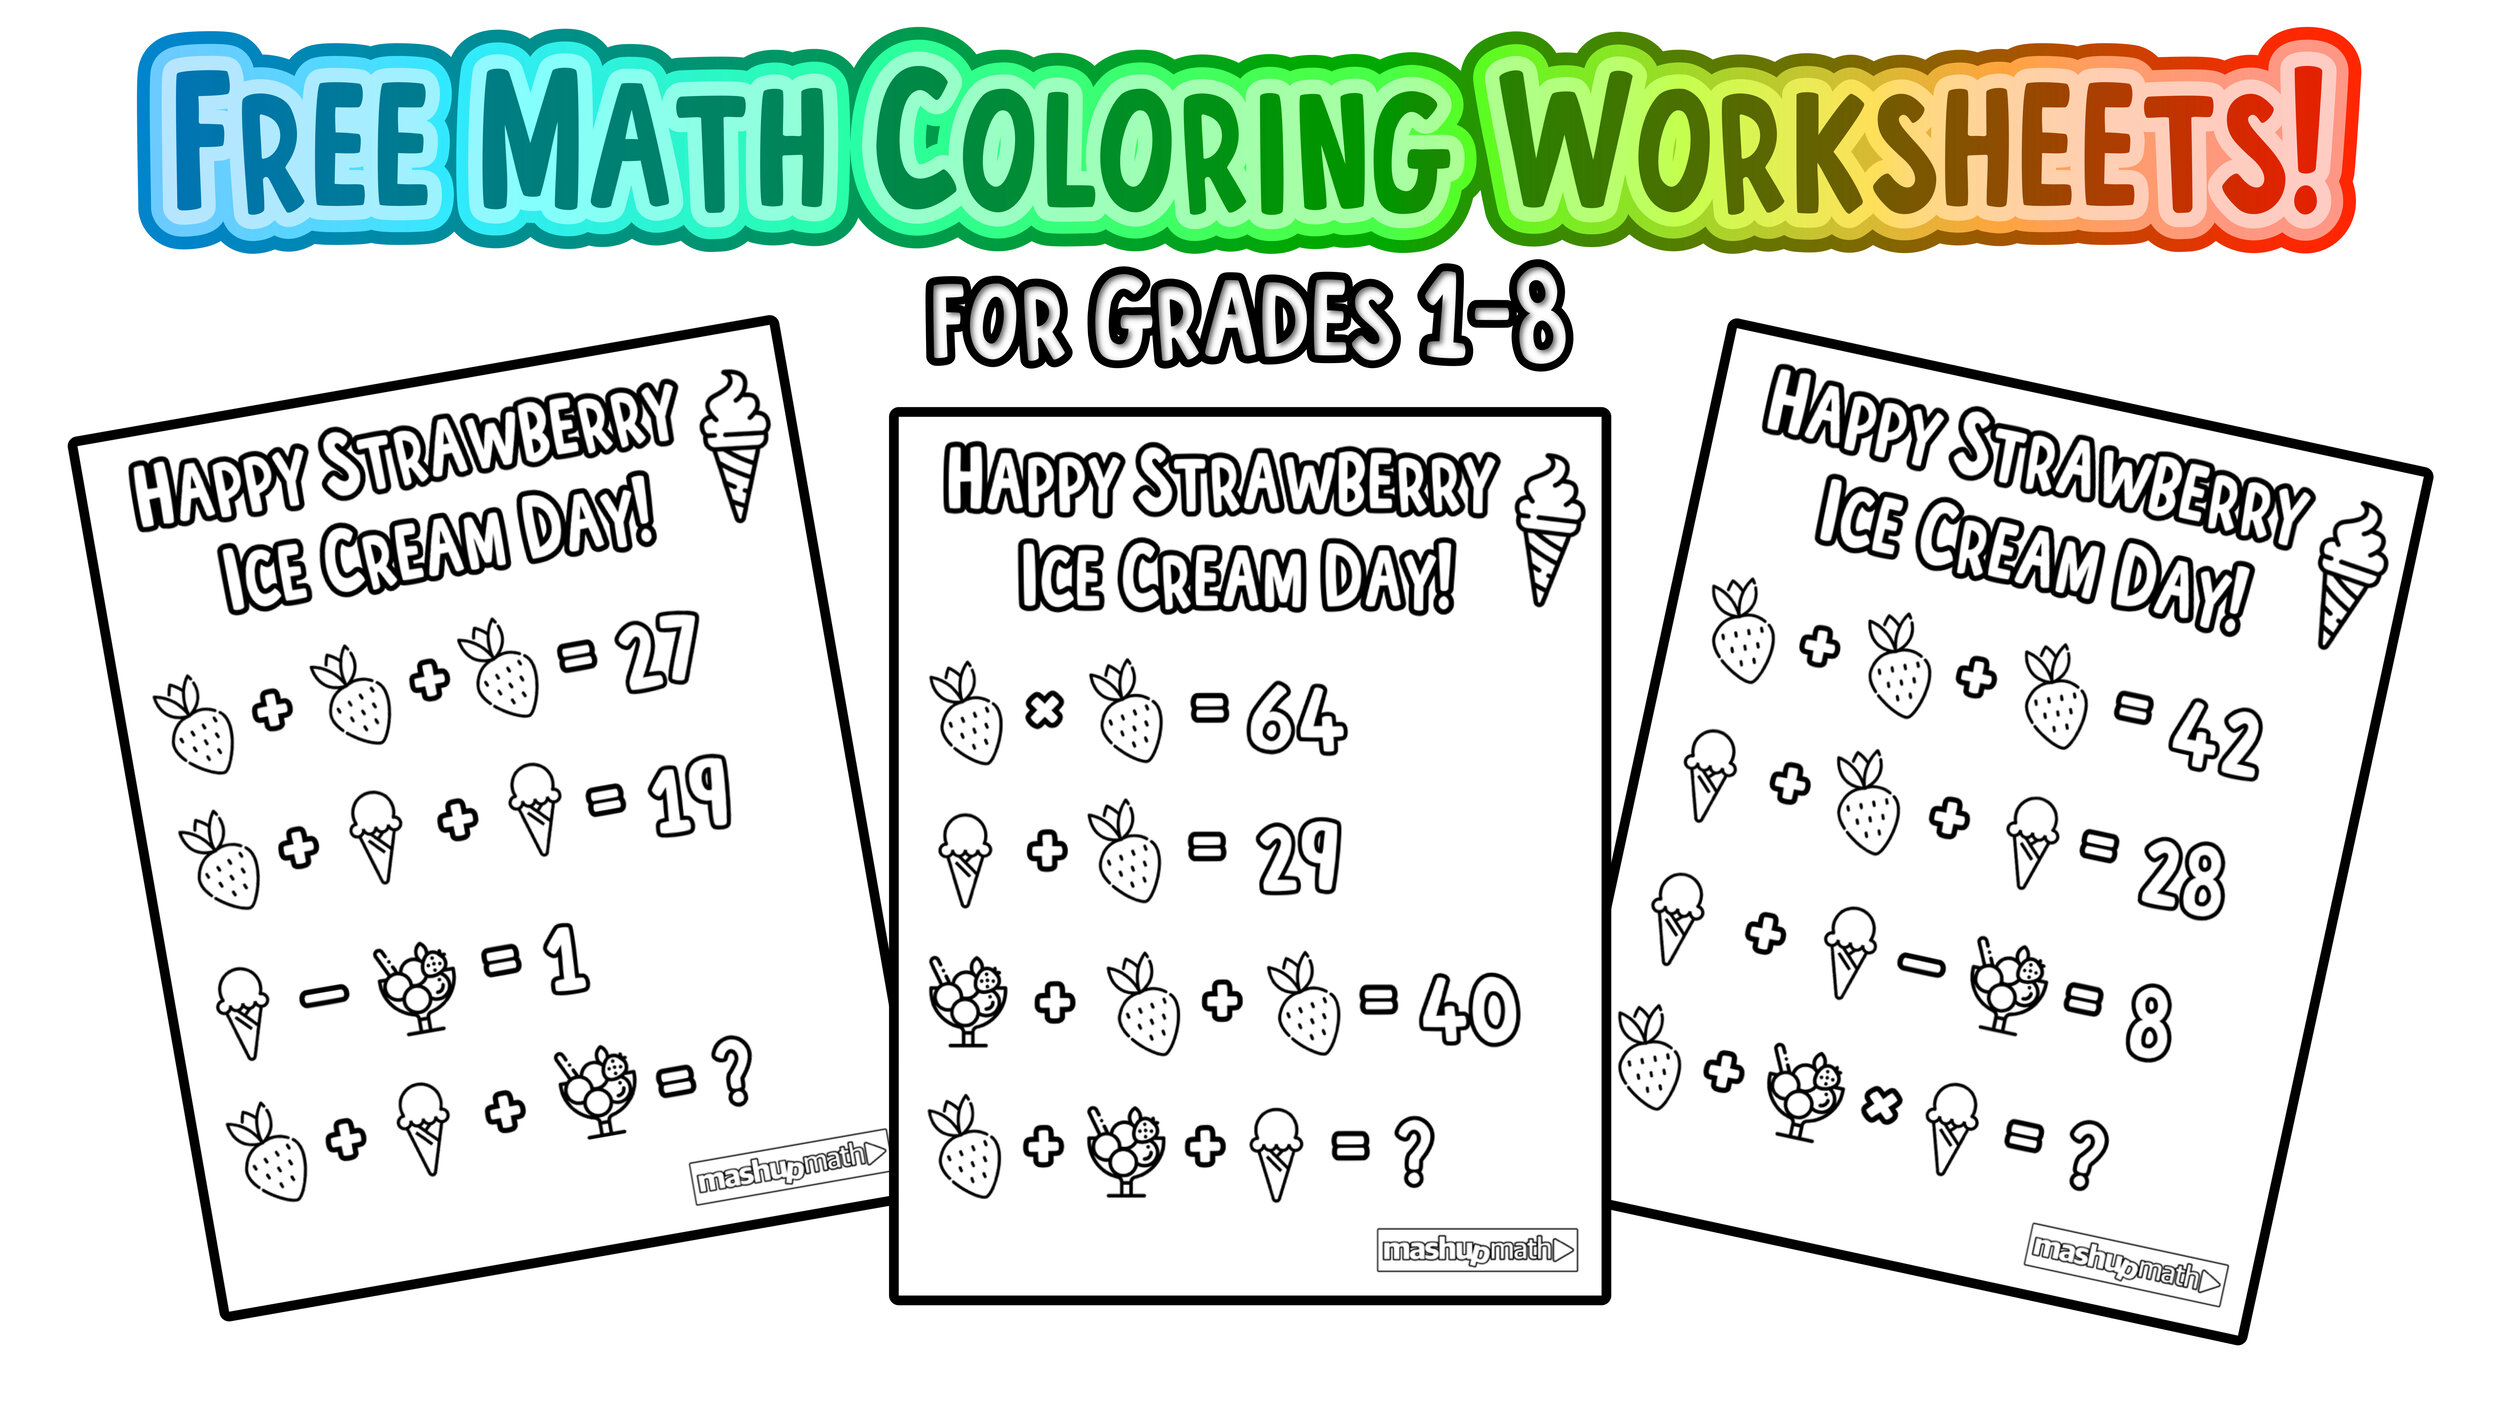 hight resolution of Free Math Coloring Pages for Grades 1-8 — Mashup Math